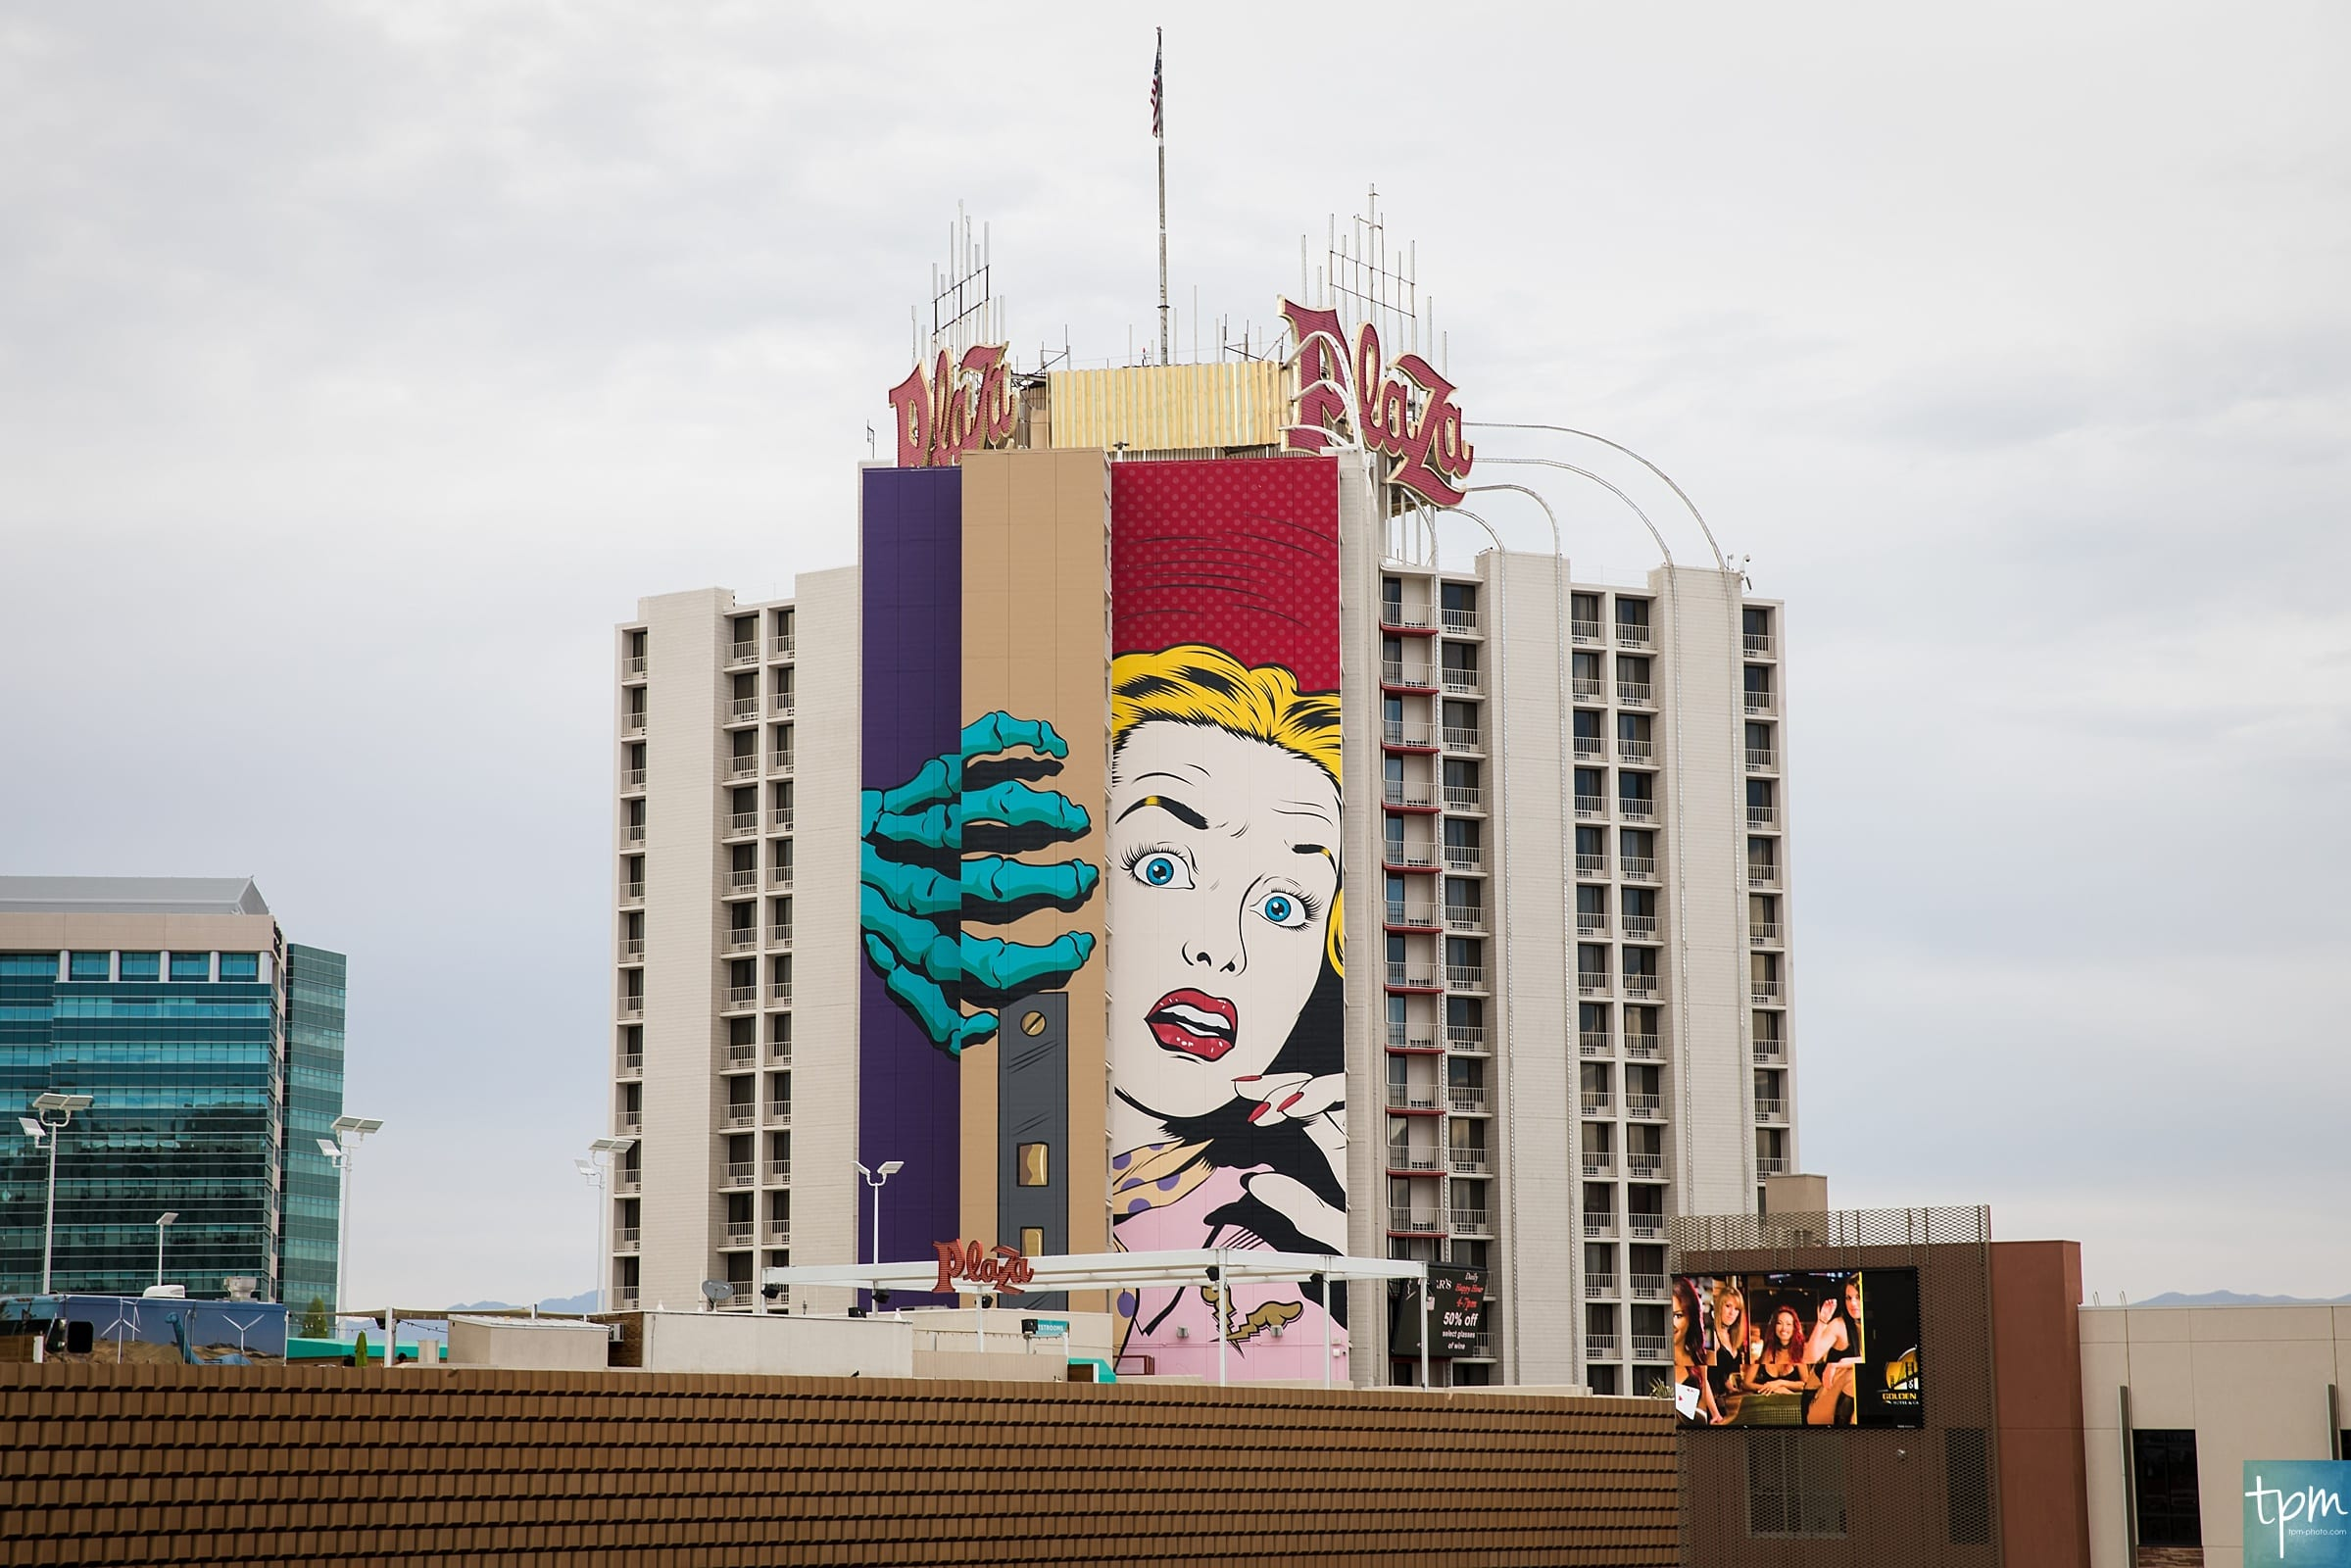 D*Face, Plaza Hotel, Taylored Photo Memories, Las Vegas Murals